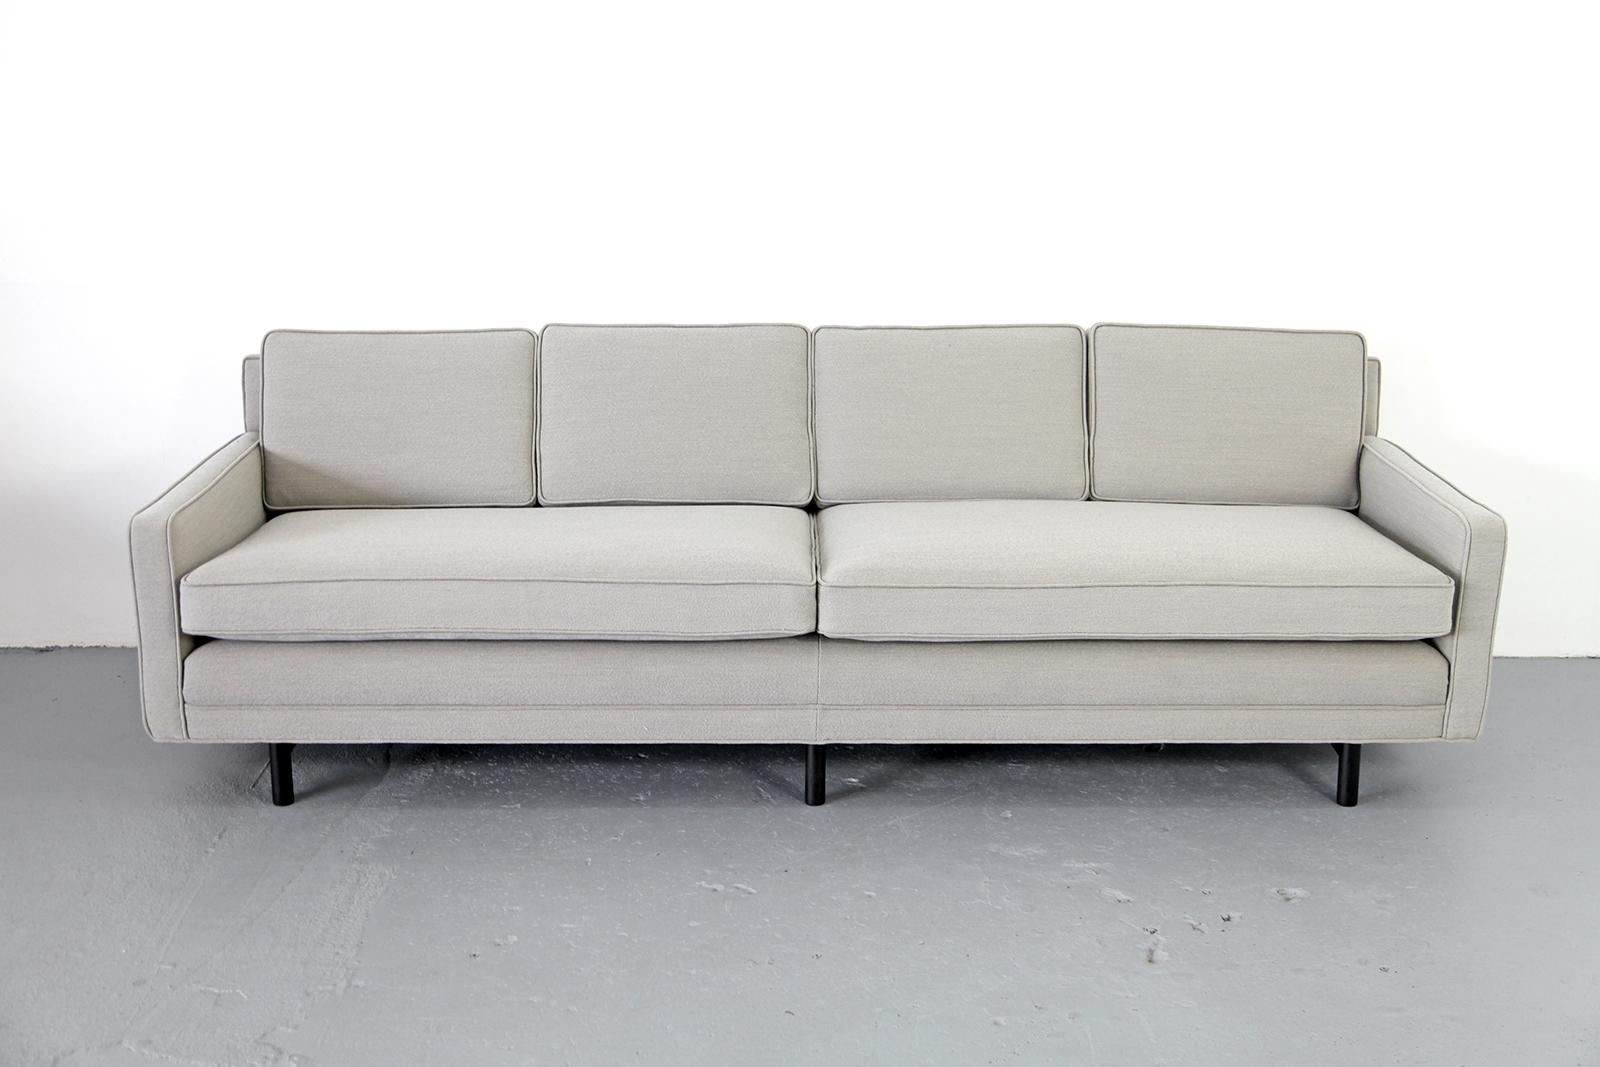 4 Seater Sofapaul Mccobb For Directional For Sale At Pamono Within Large 4 Seater Sofas (Image 2 of 20)